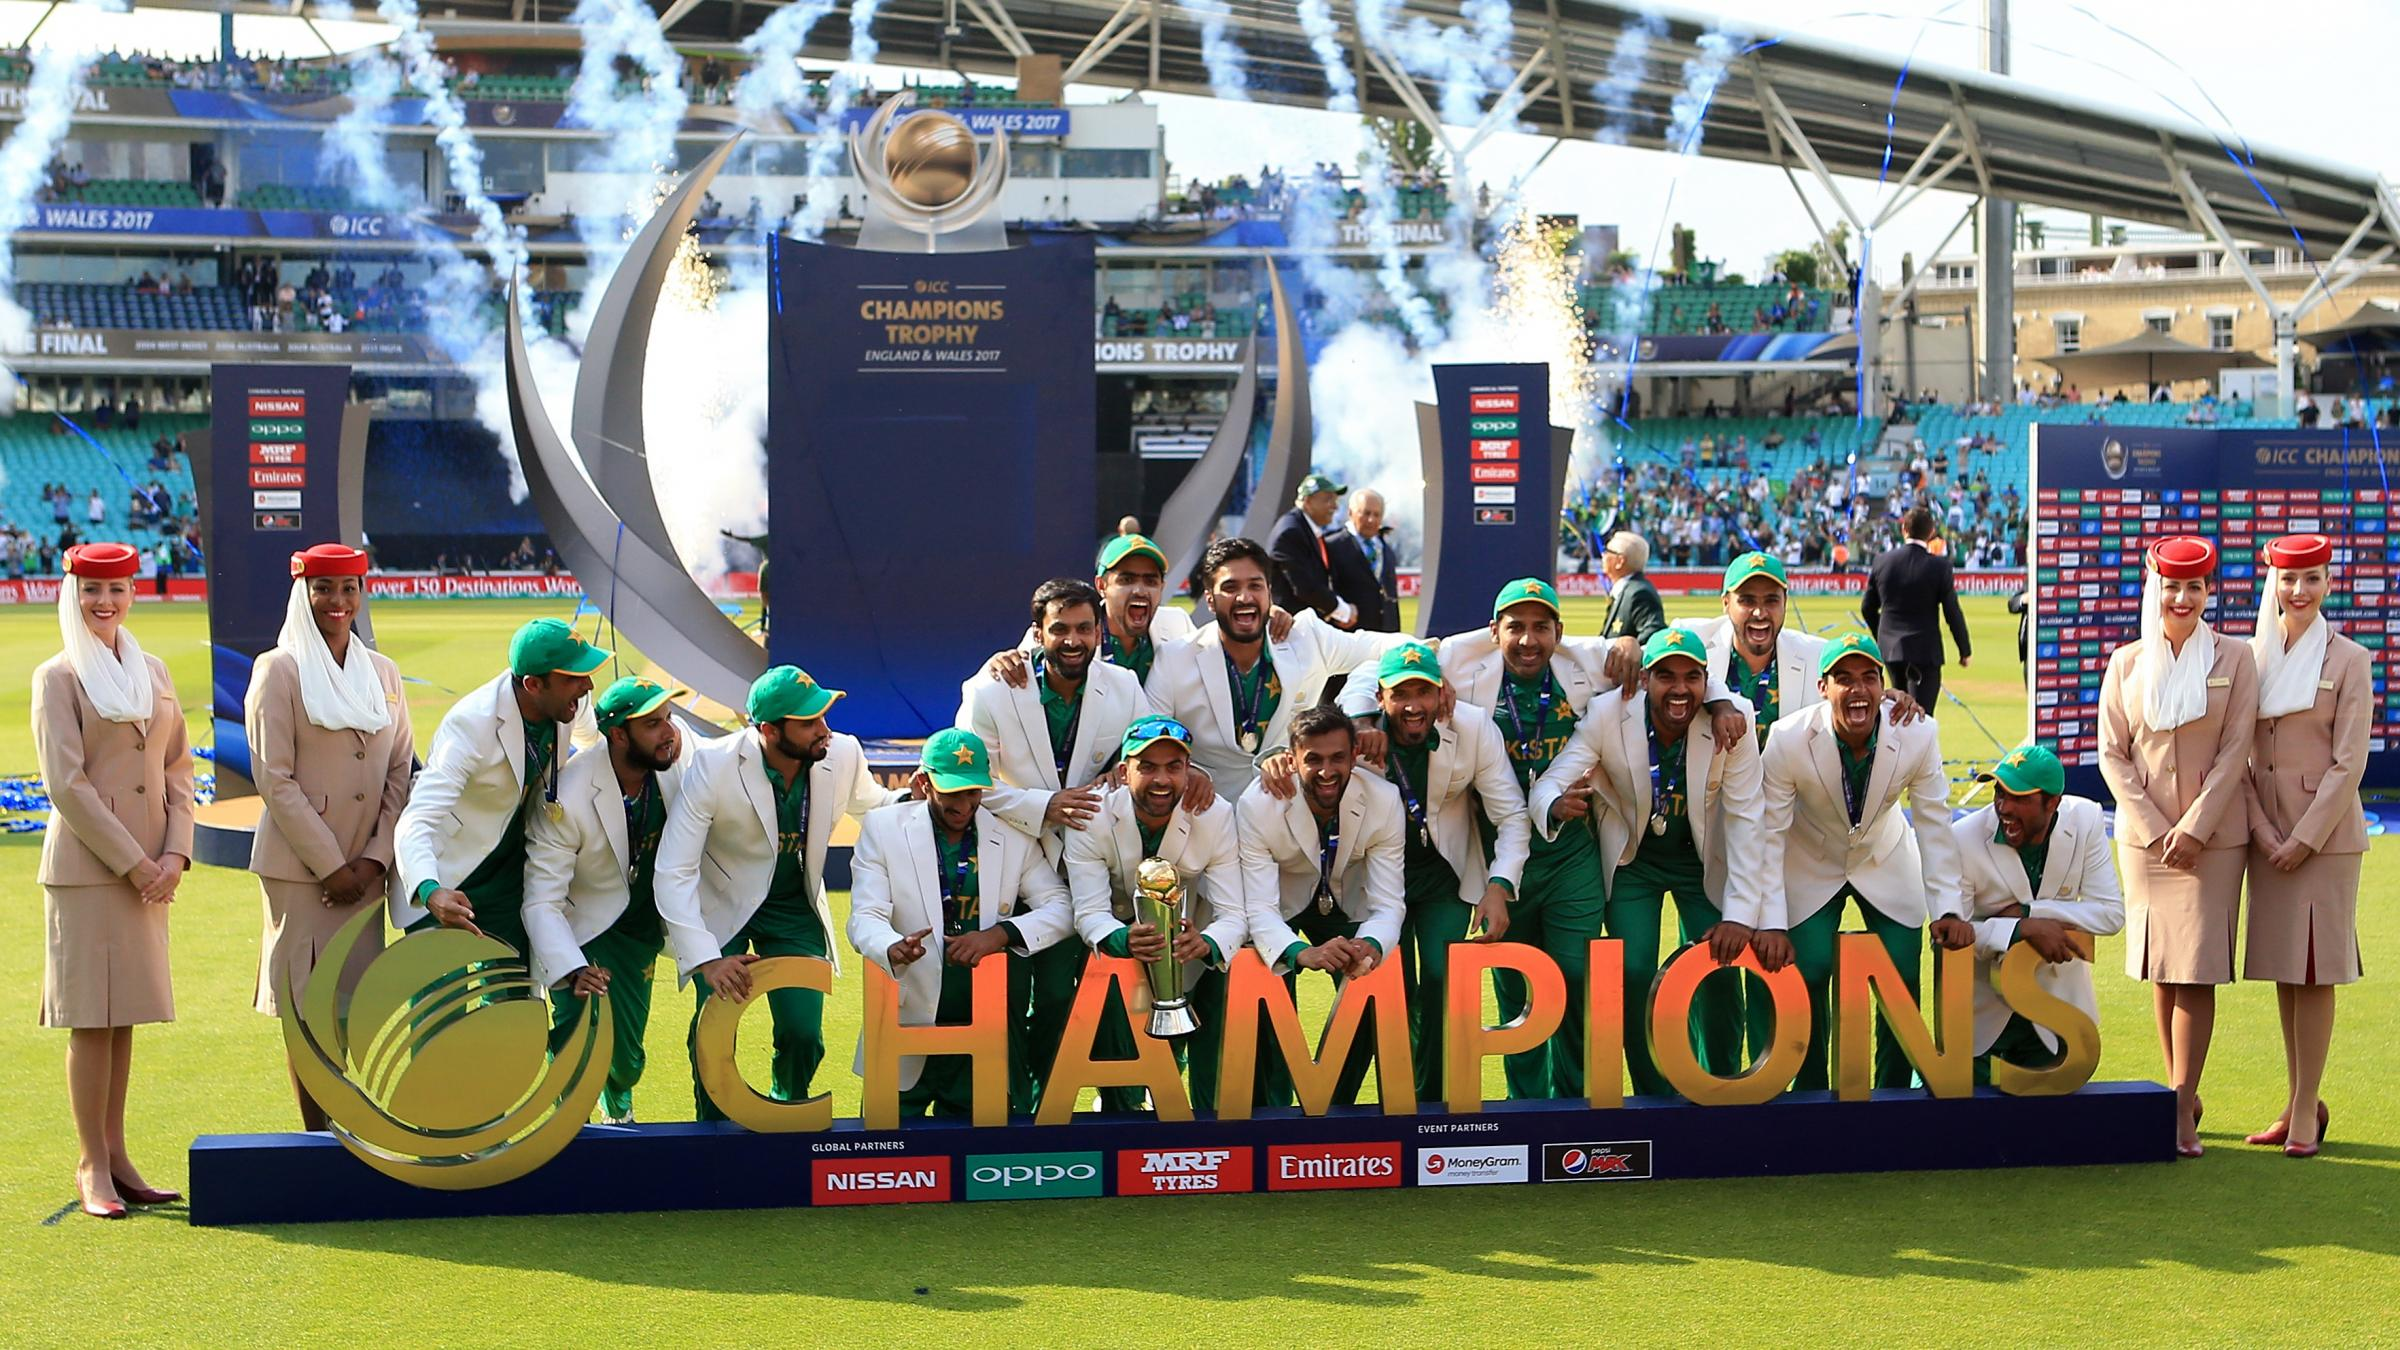 Kane Williamson named 12th man as Pakistan dominate Champions Trophy team